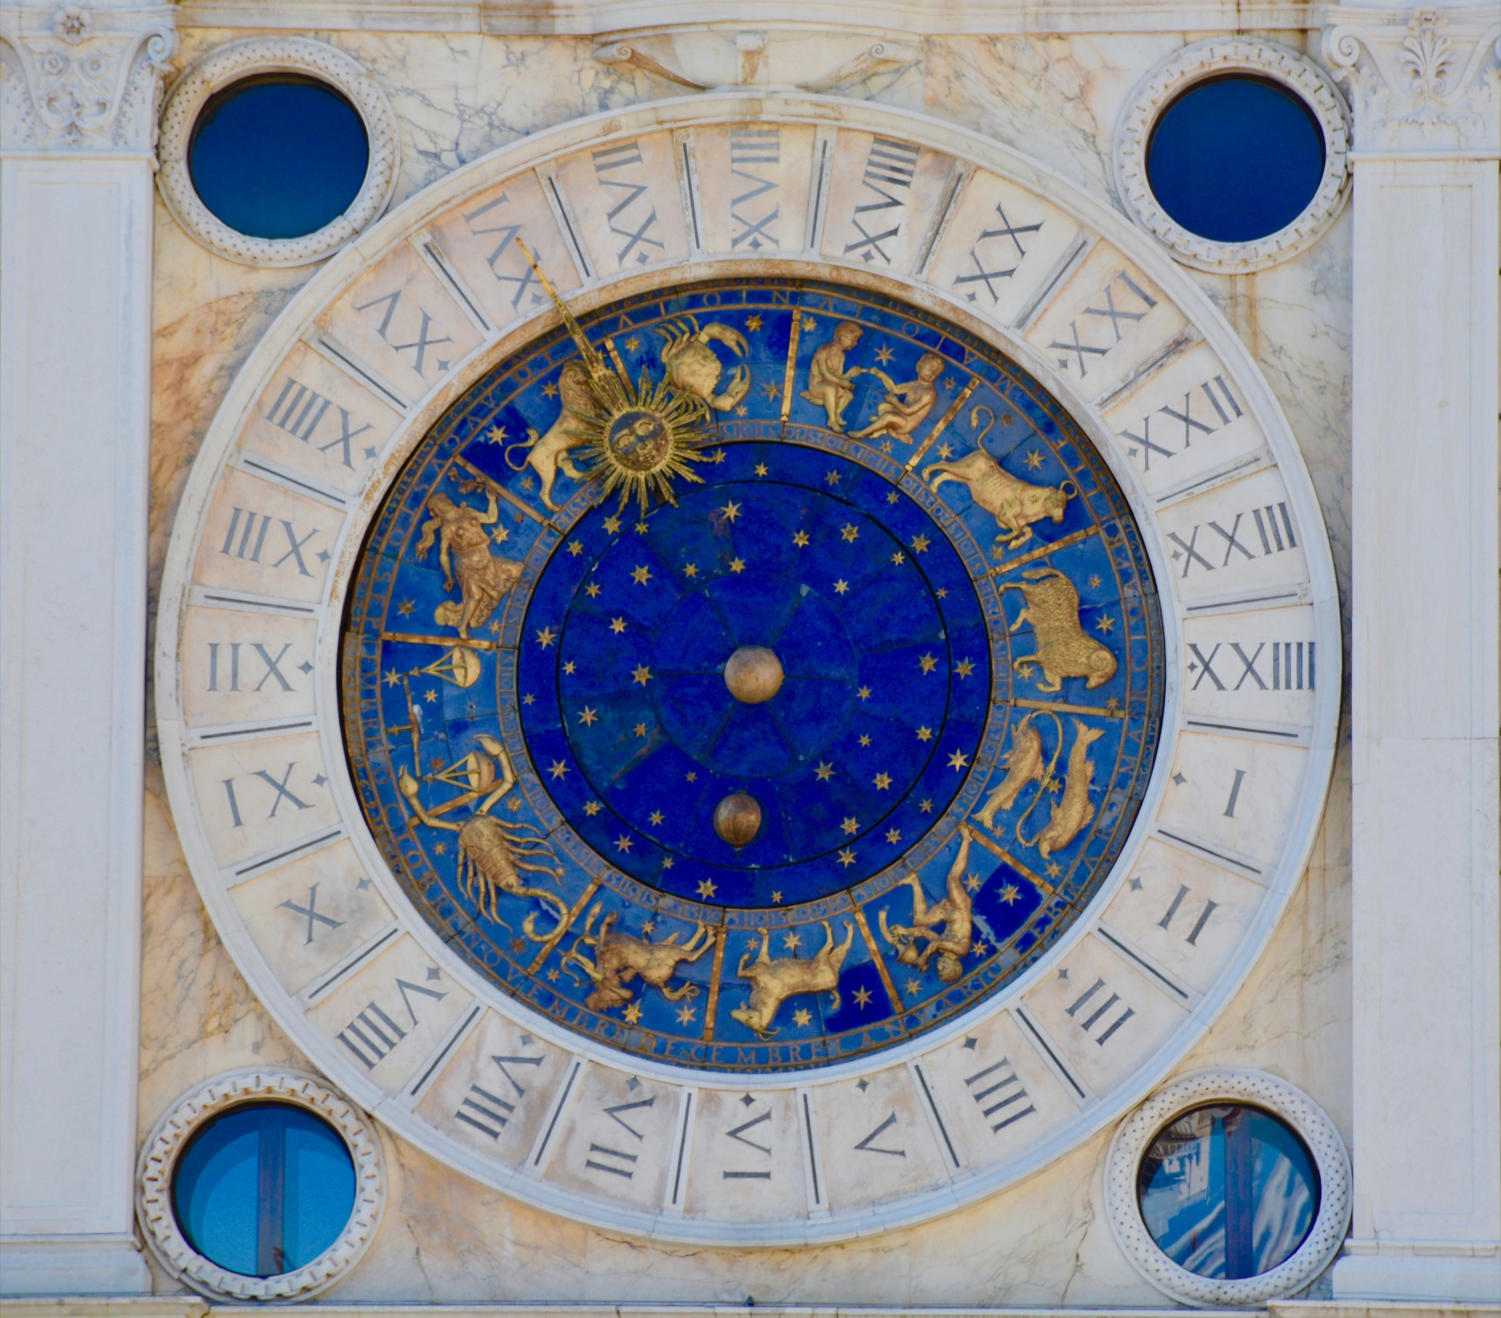 Zodiac public art. Photo credit: Uplash Royalty-Free Images.